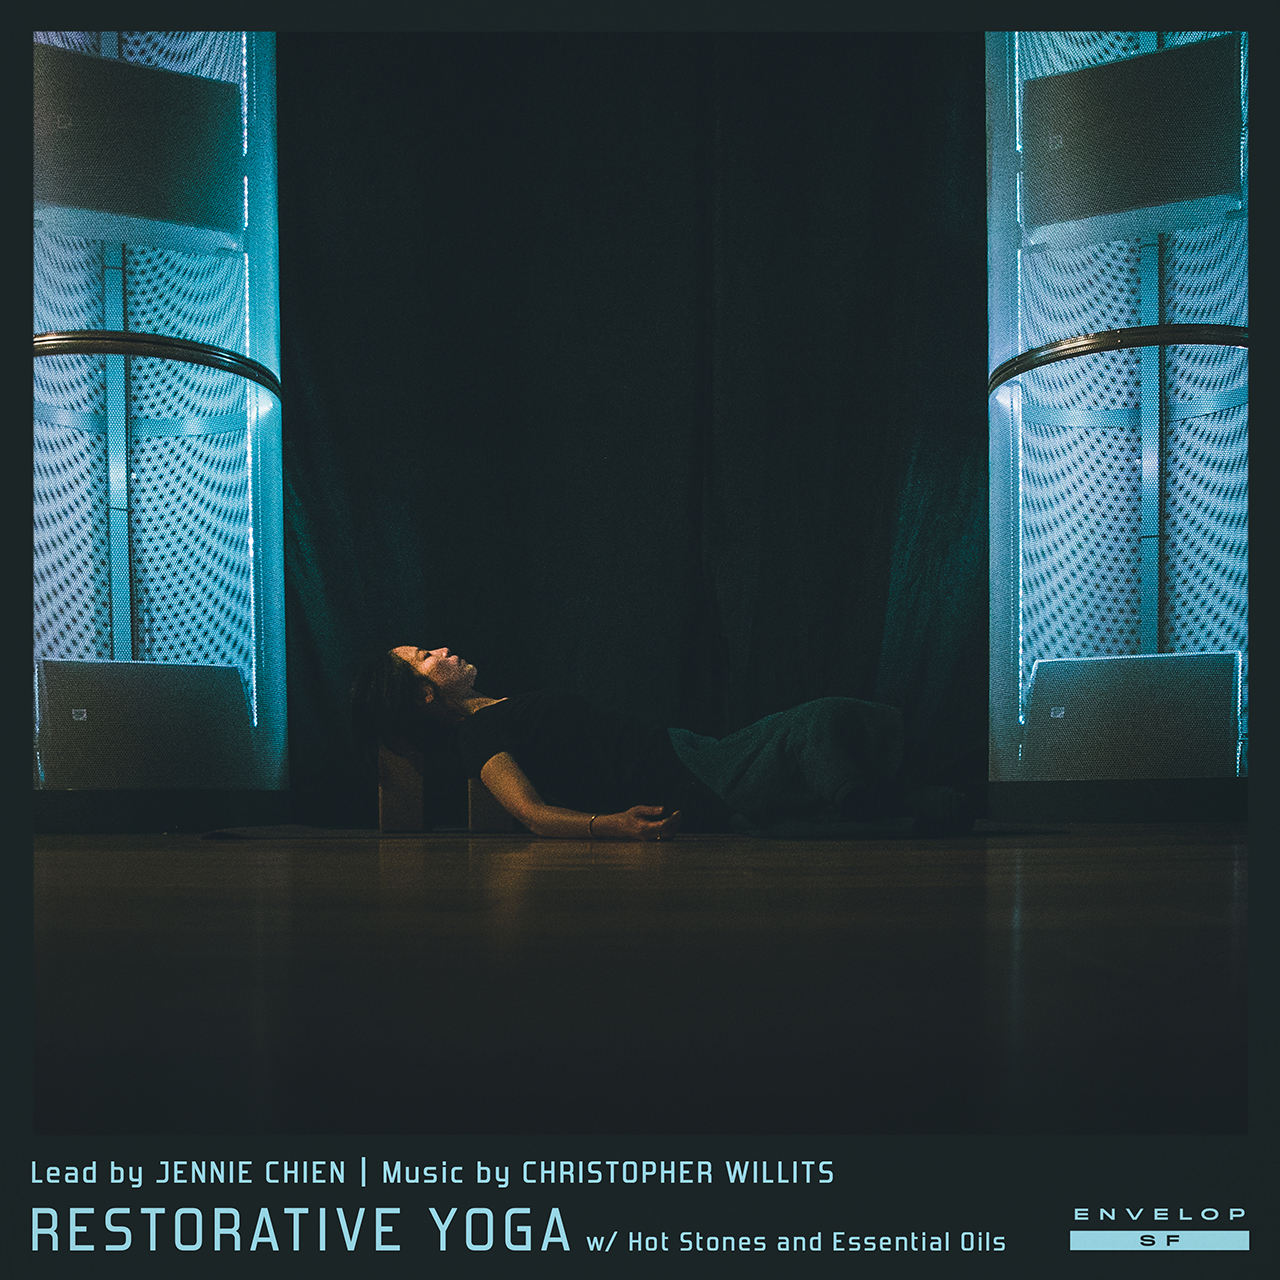 Envelop Restorative Yoga  Tue August 14, 2018 | At Envelop SF | 7:30 PM Doors